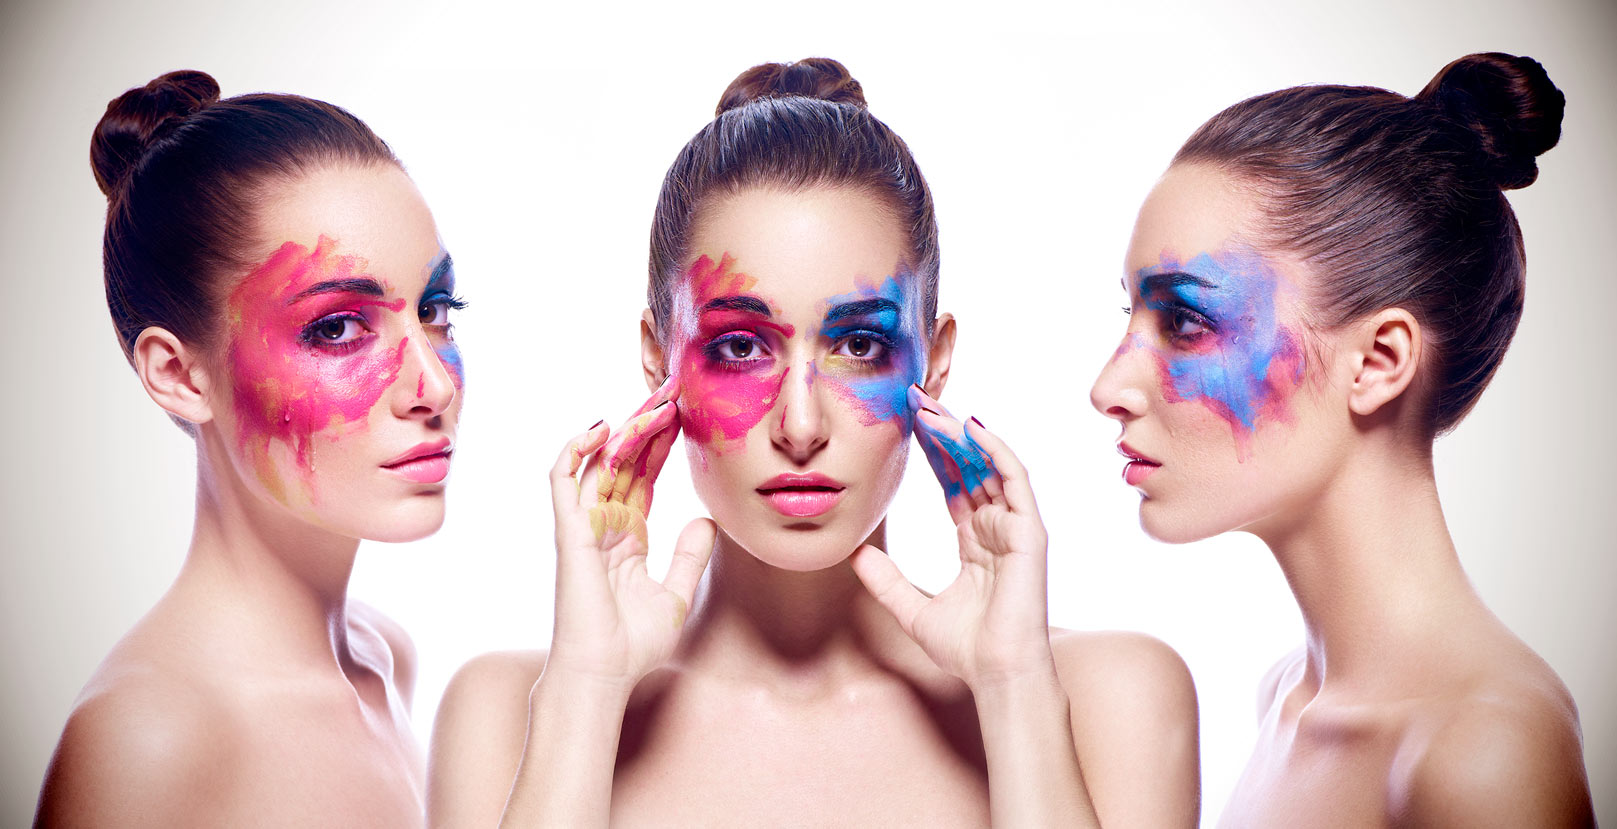 Mark DeLong - Celebrity Photographer - Three views of an actress with pink and blue paint on her face.